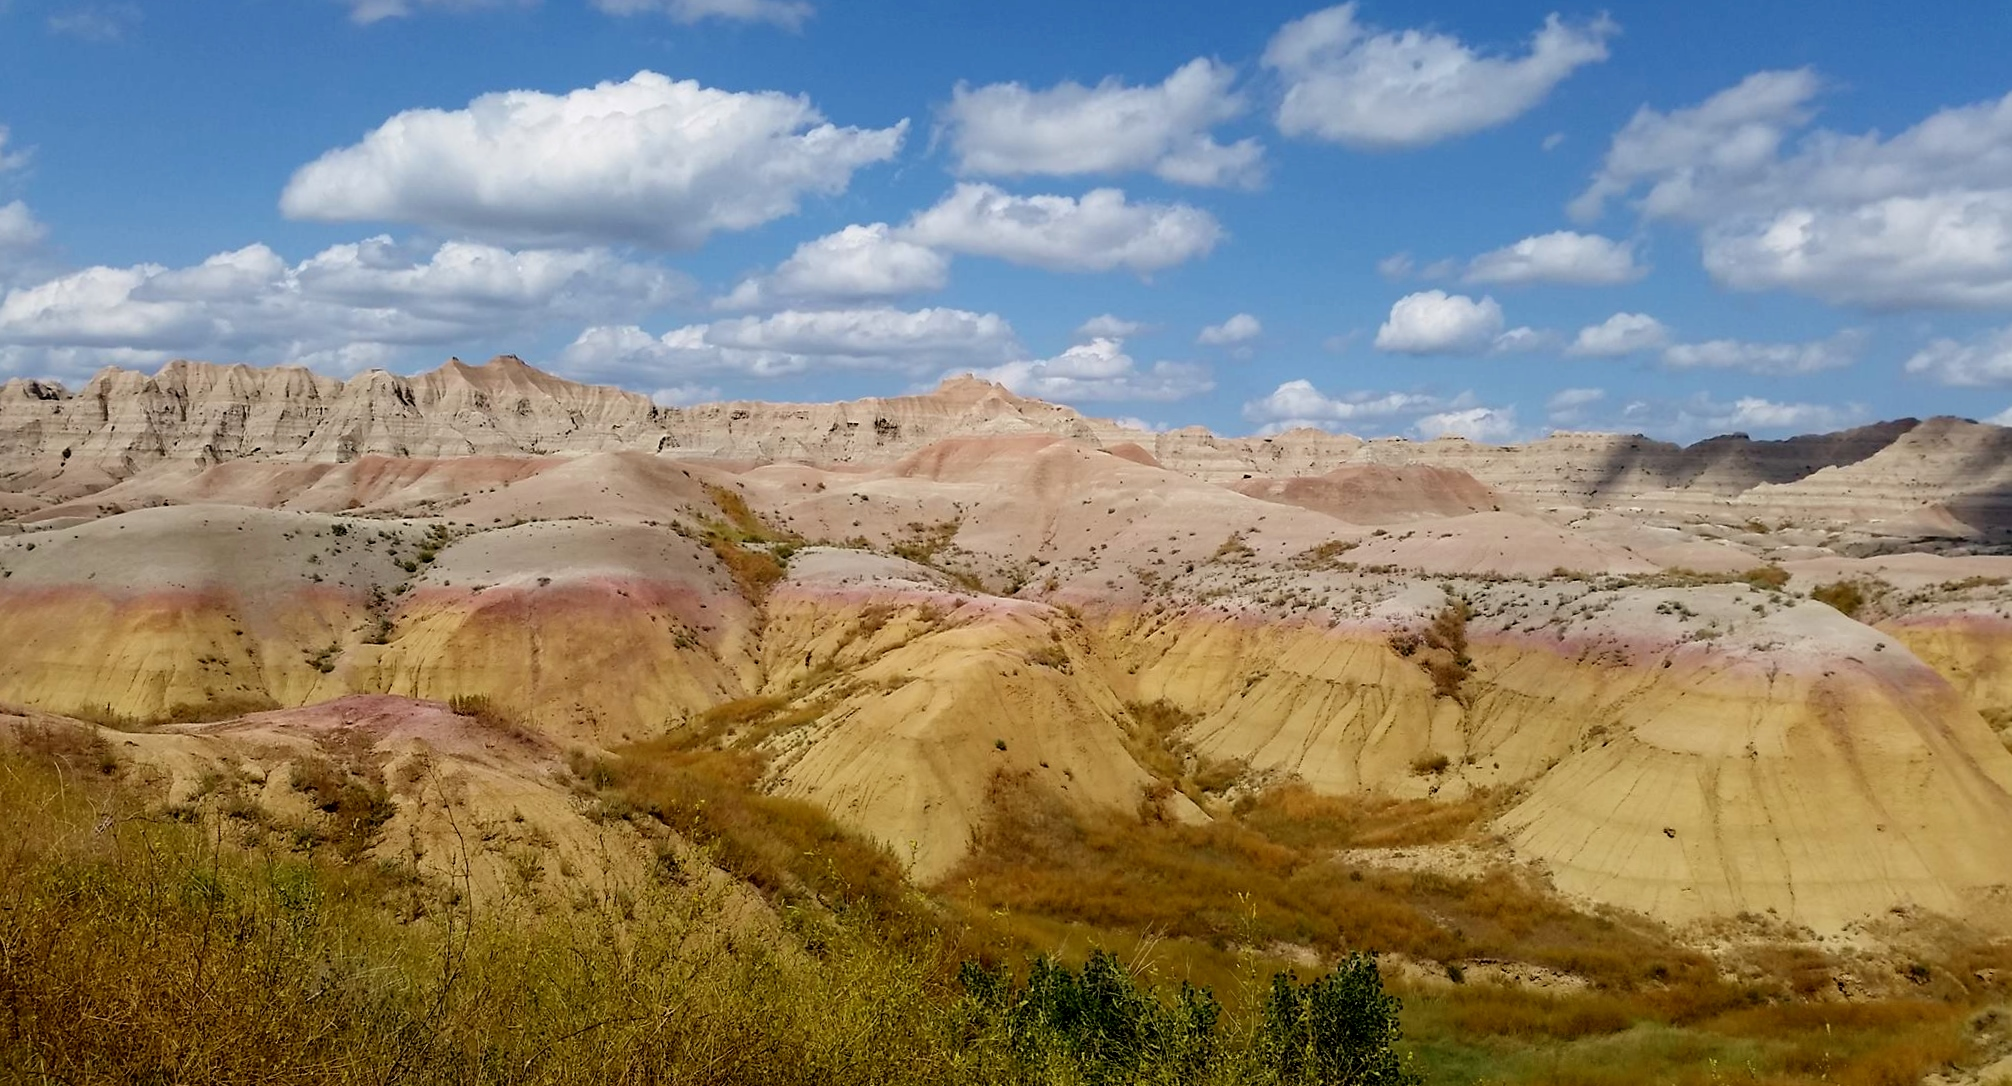 Another section of the Badlands with amazing colors in the dirt.  Over 75 million years ago, it was all under water and there were giant sea creatures living here.